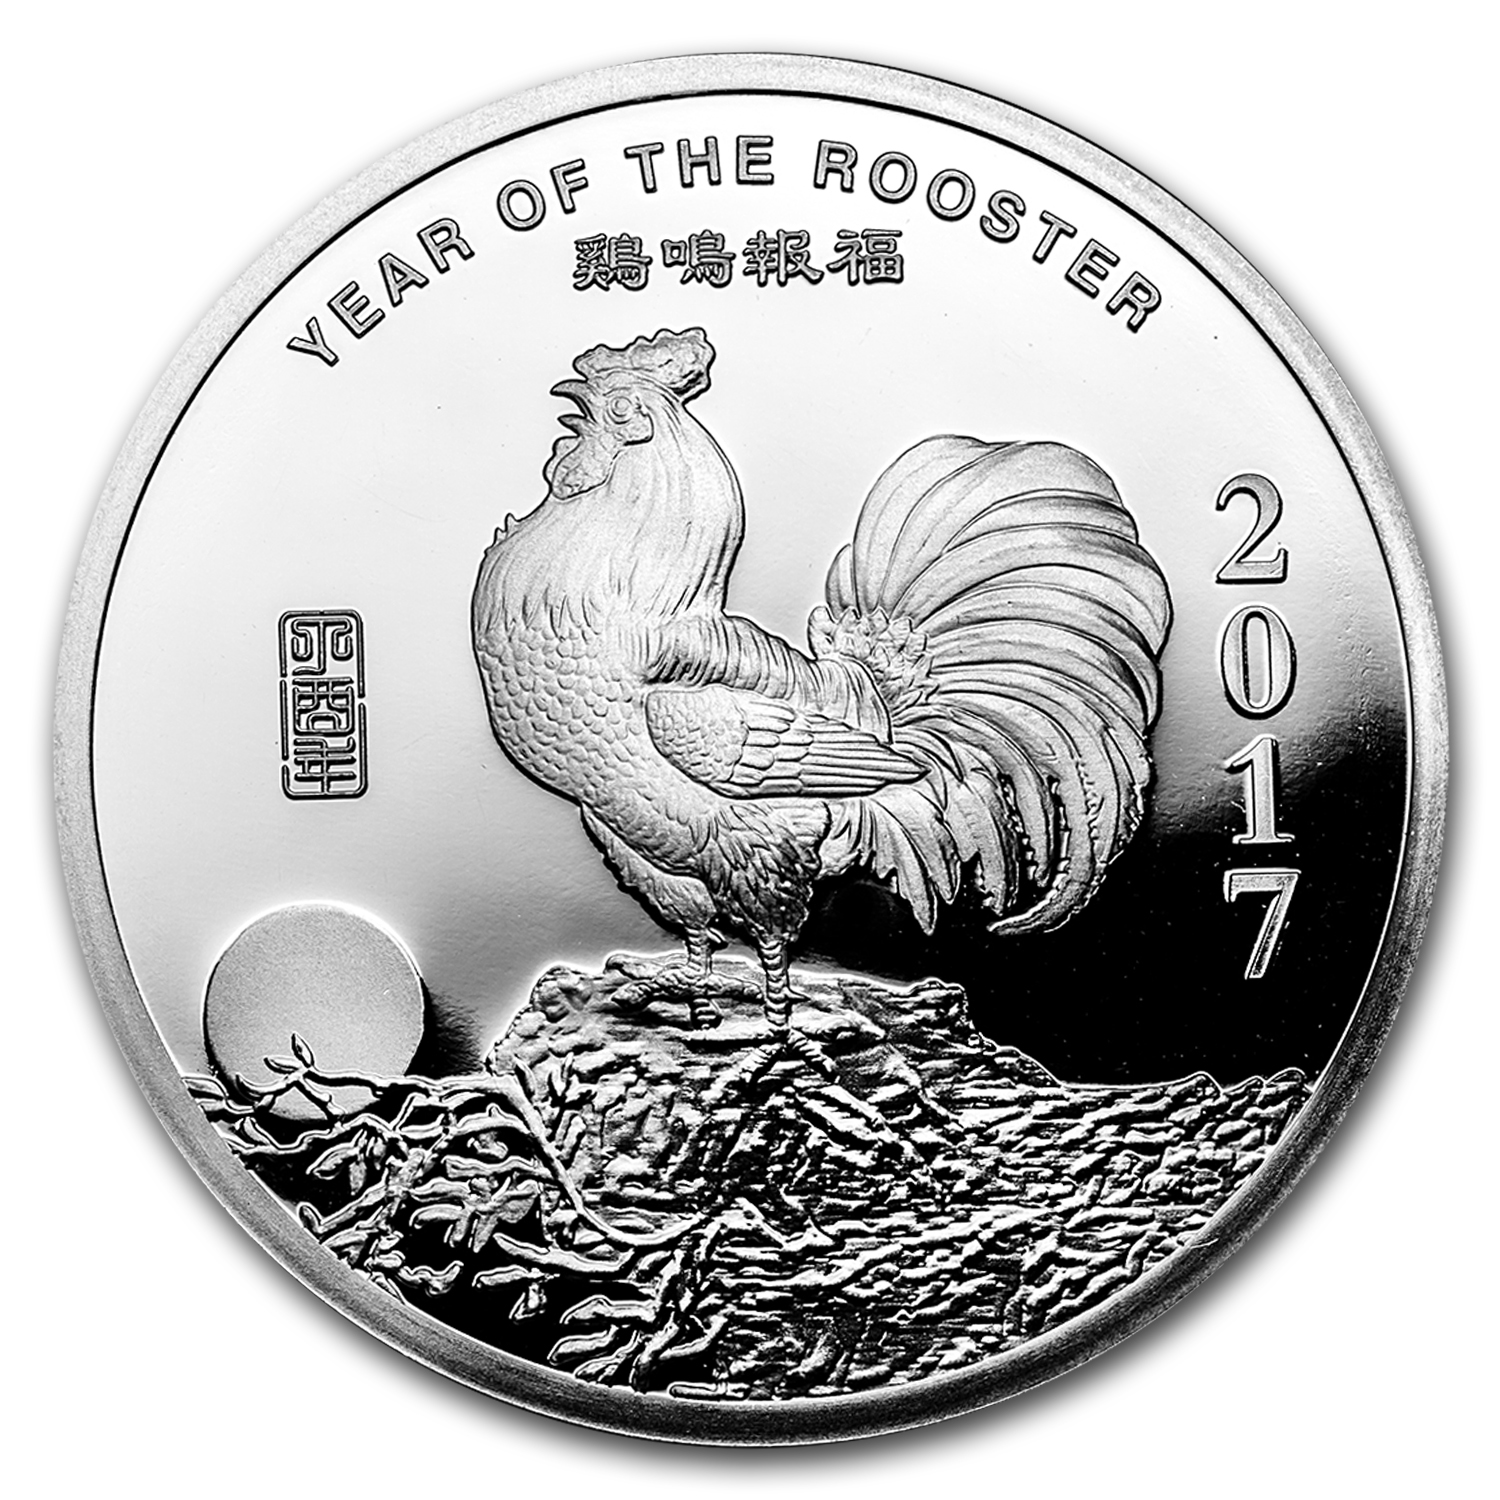 1 oz Silver Round - APMEX (2017 Year of the Rooster)